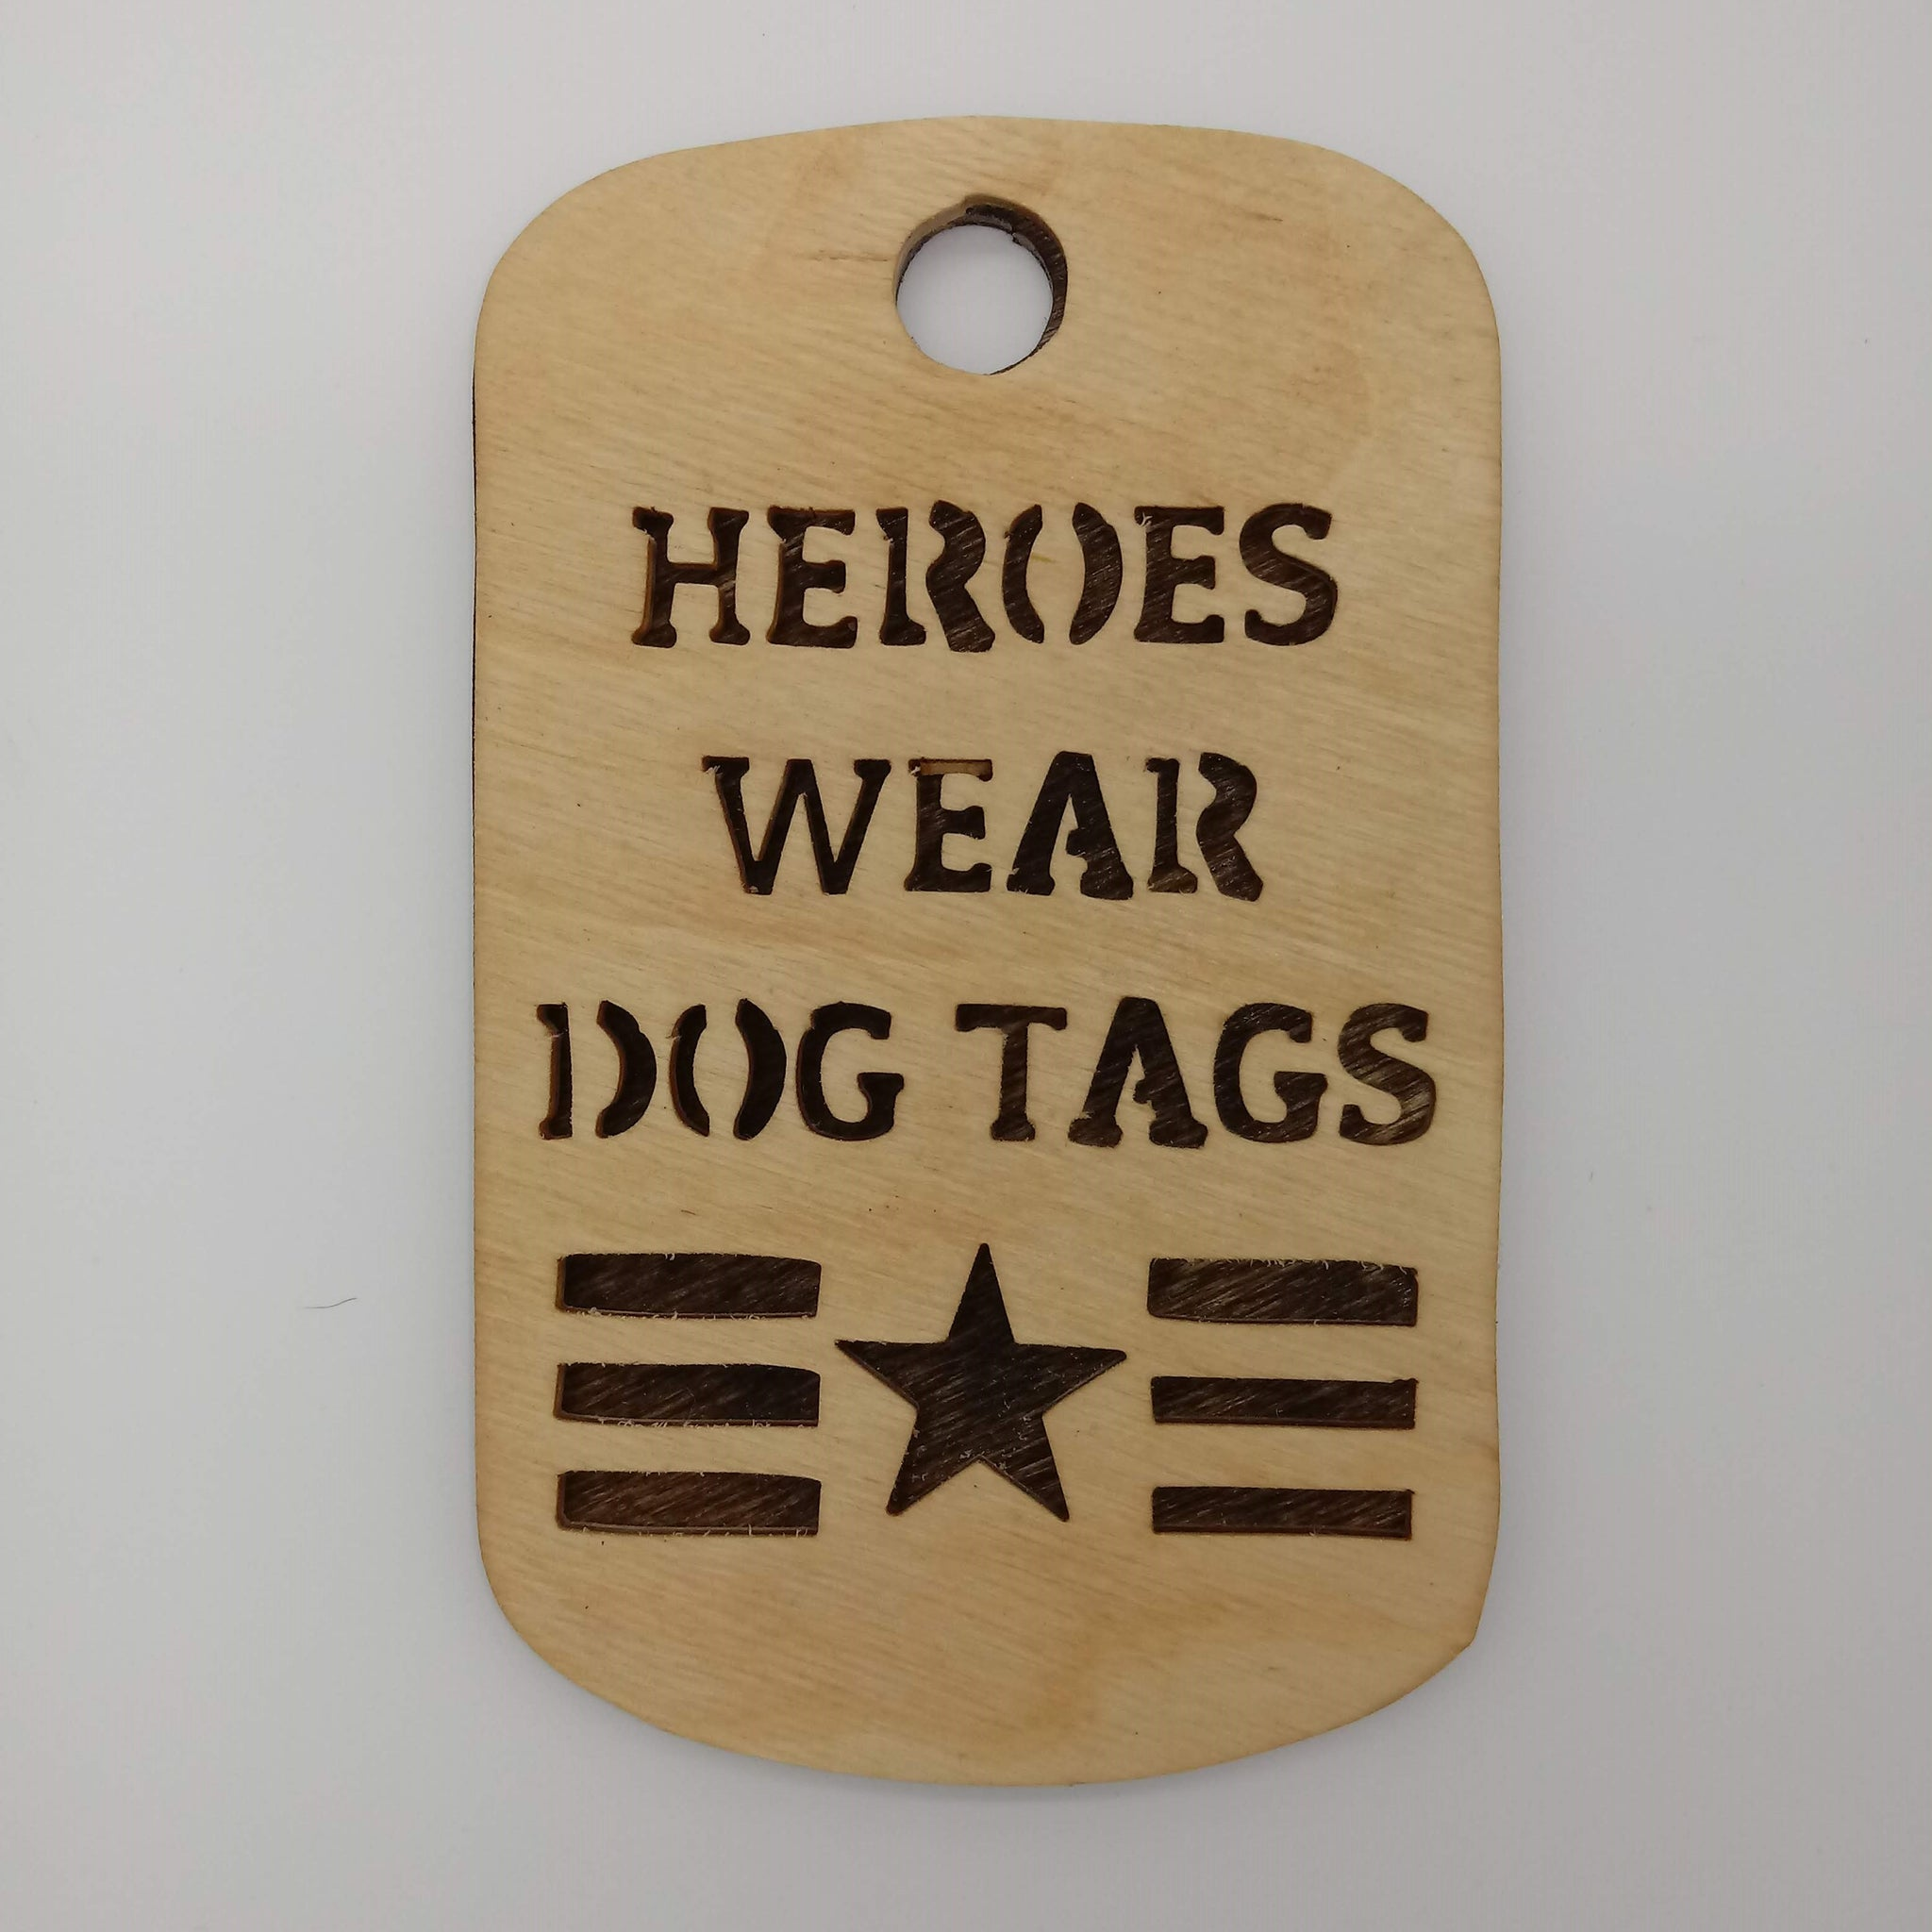 Heroes Wear Dog Tags - Kripp's Kreations